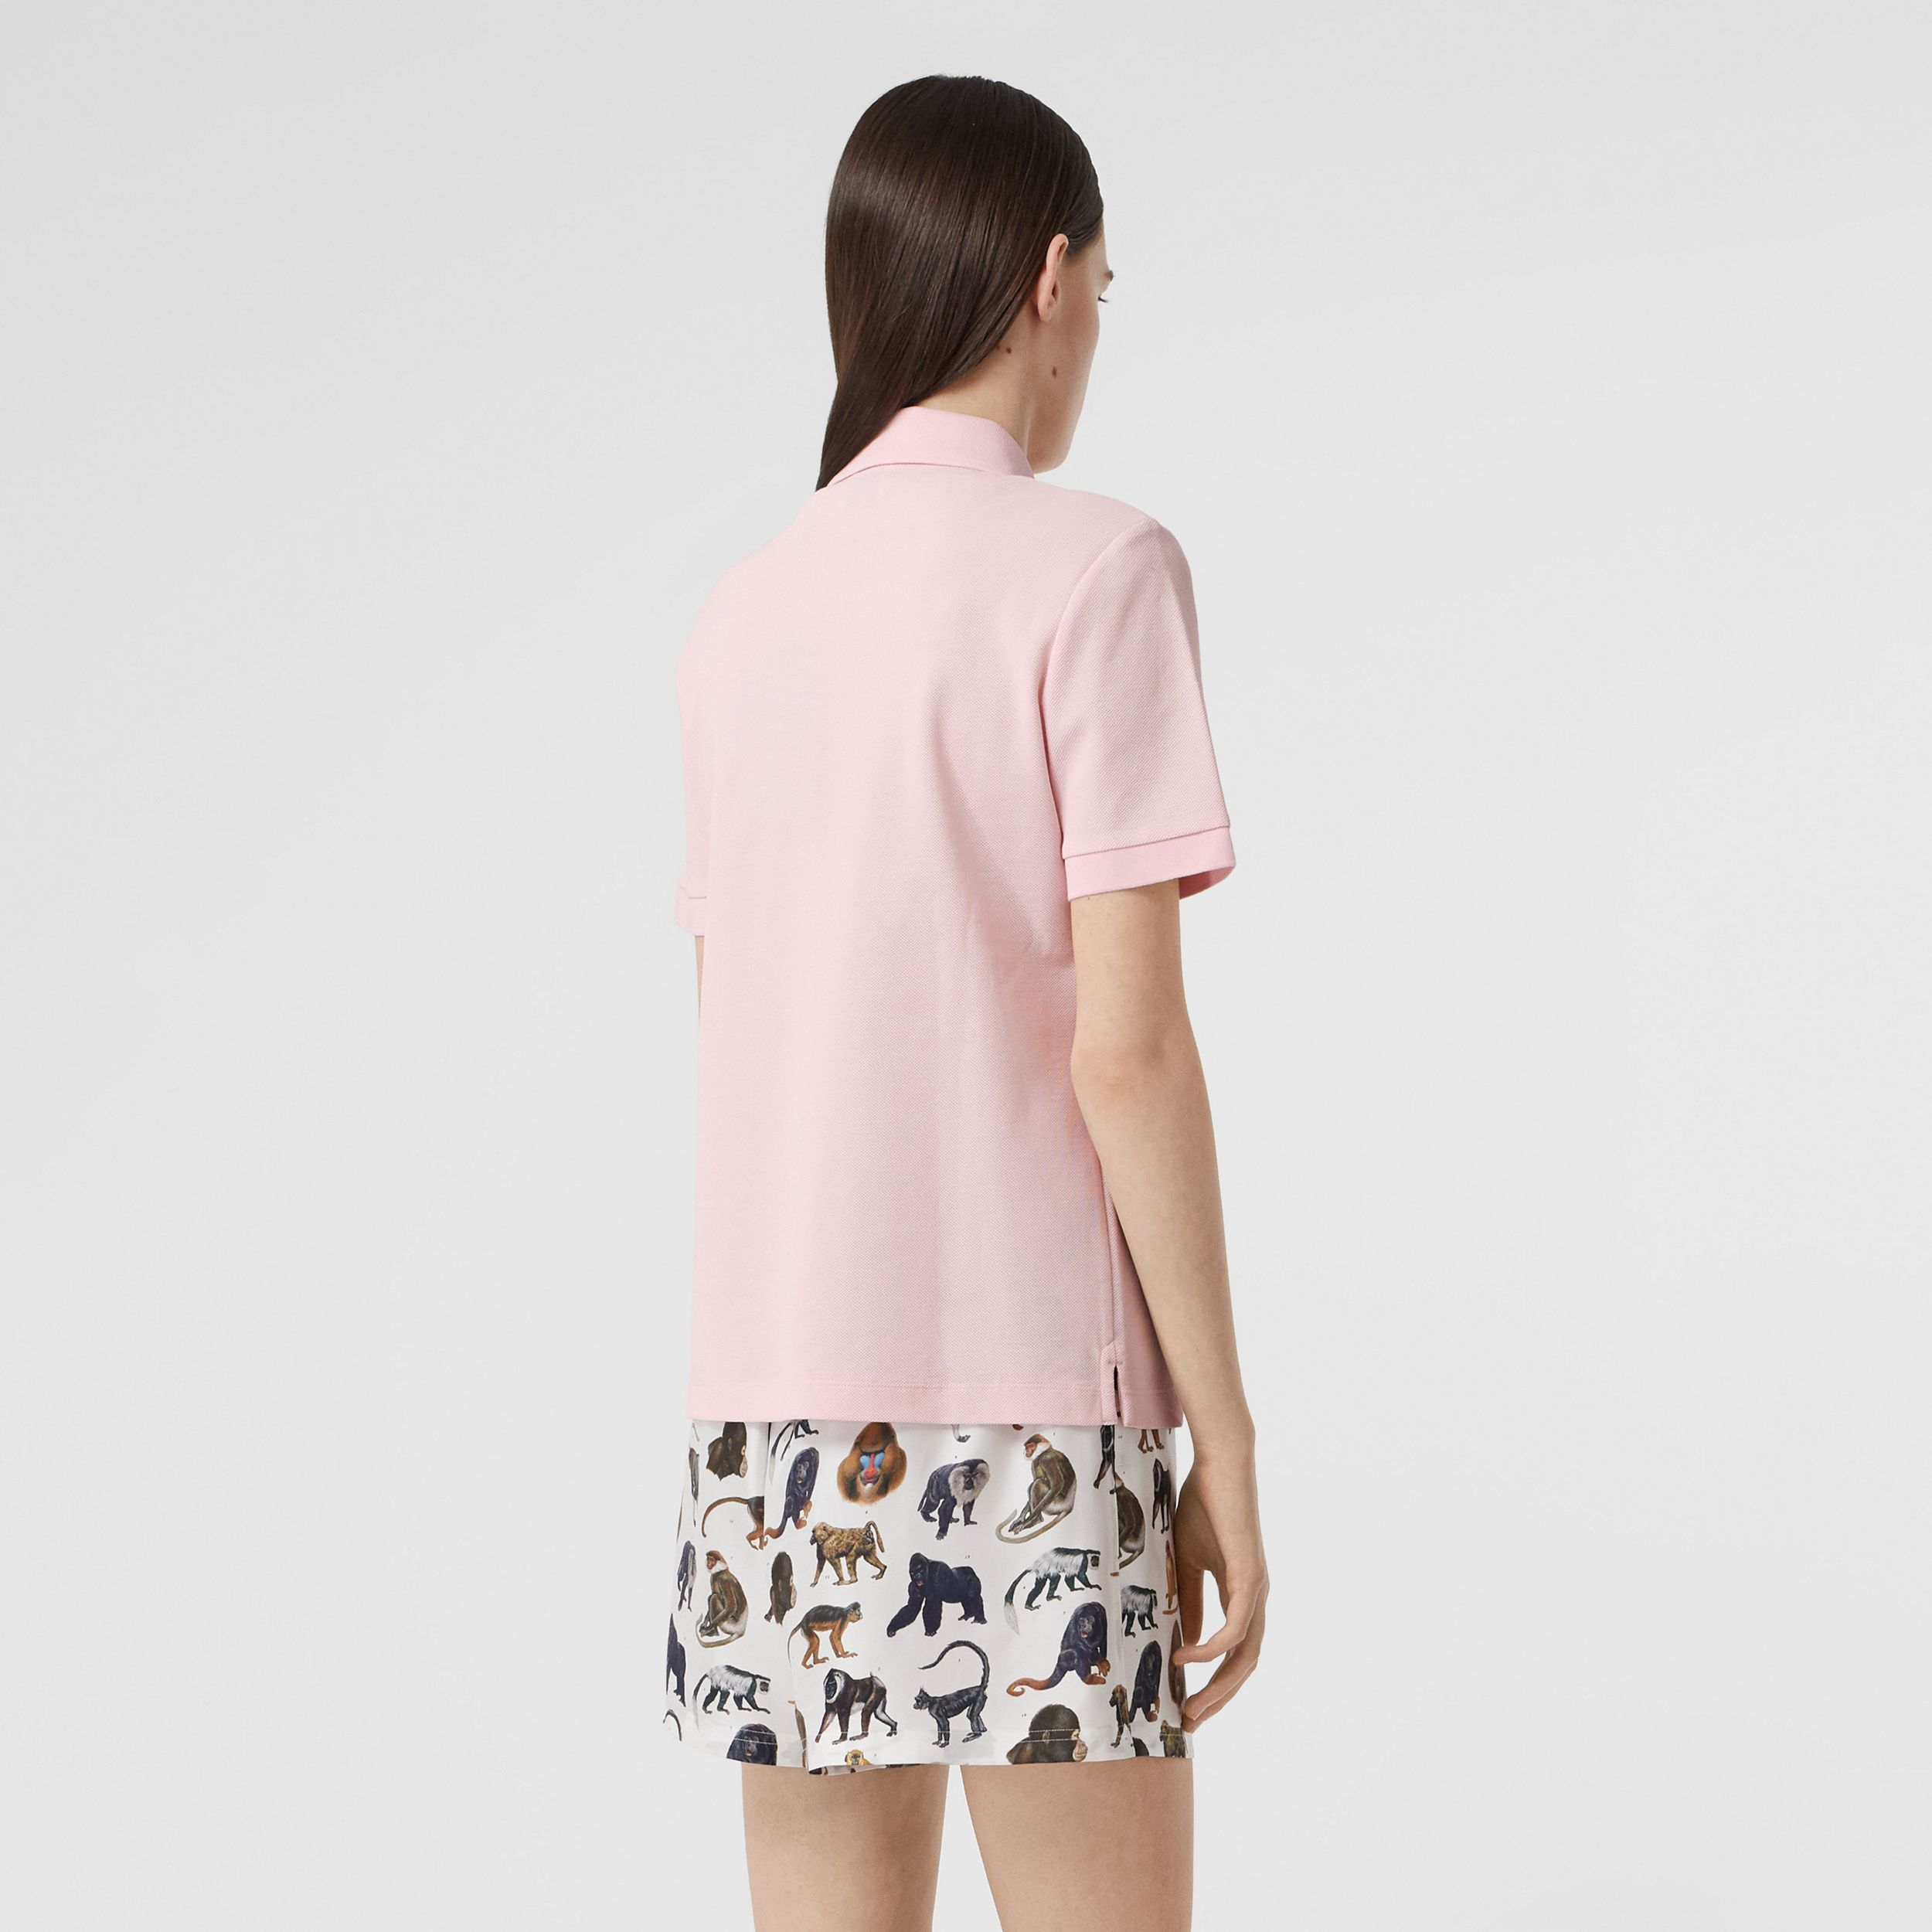 Monogram Motif Cotton Piqué Polo Shirt in Alabaster Pink - Women | Burberry - 3